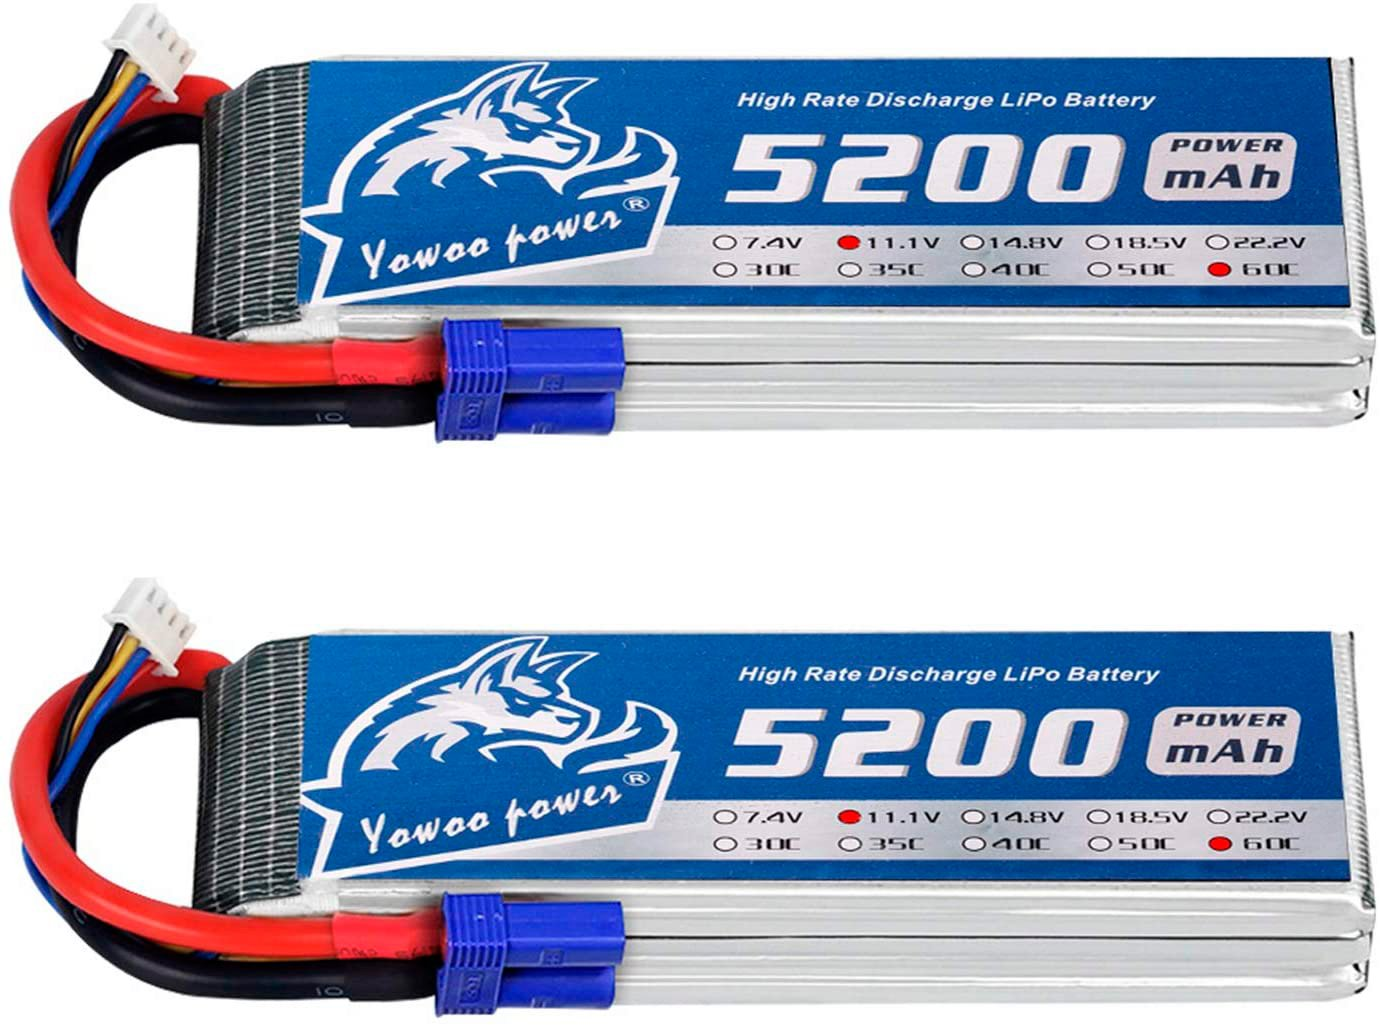 YOWOO 3S 2200 mAh LiPo Battery review